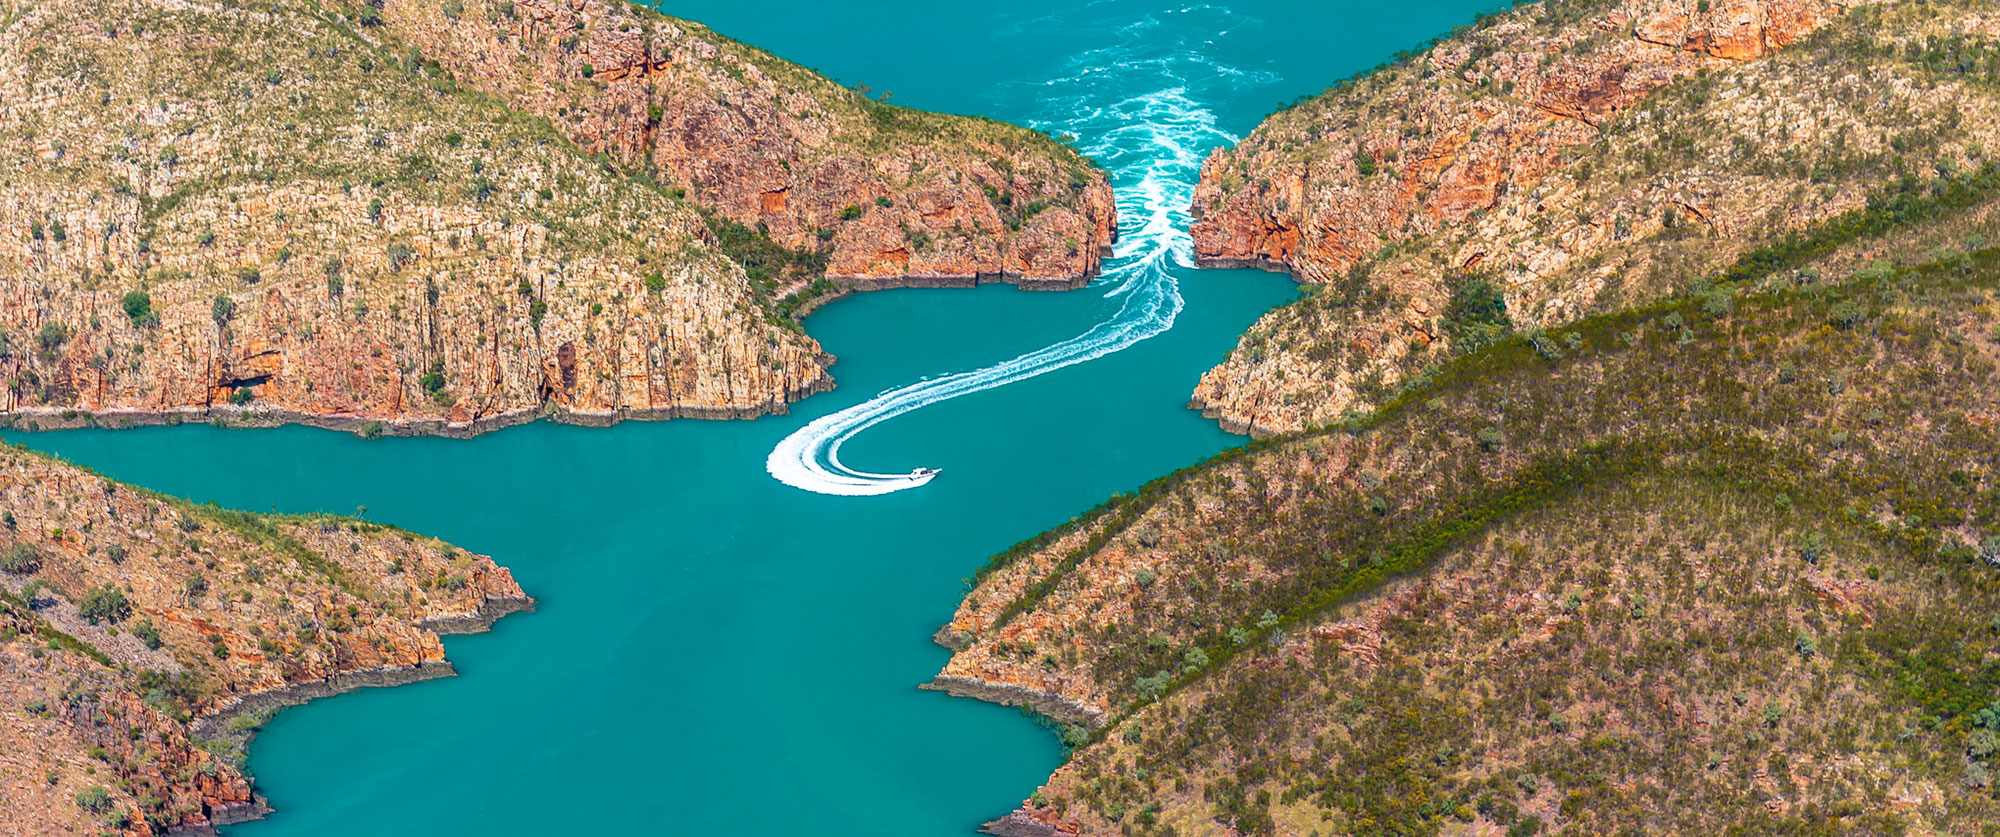 Escorted Australia Vacation Packages: Outback Culture Tour - Wild Kimberley Coast, Horizontal Falls